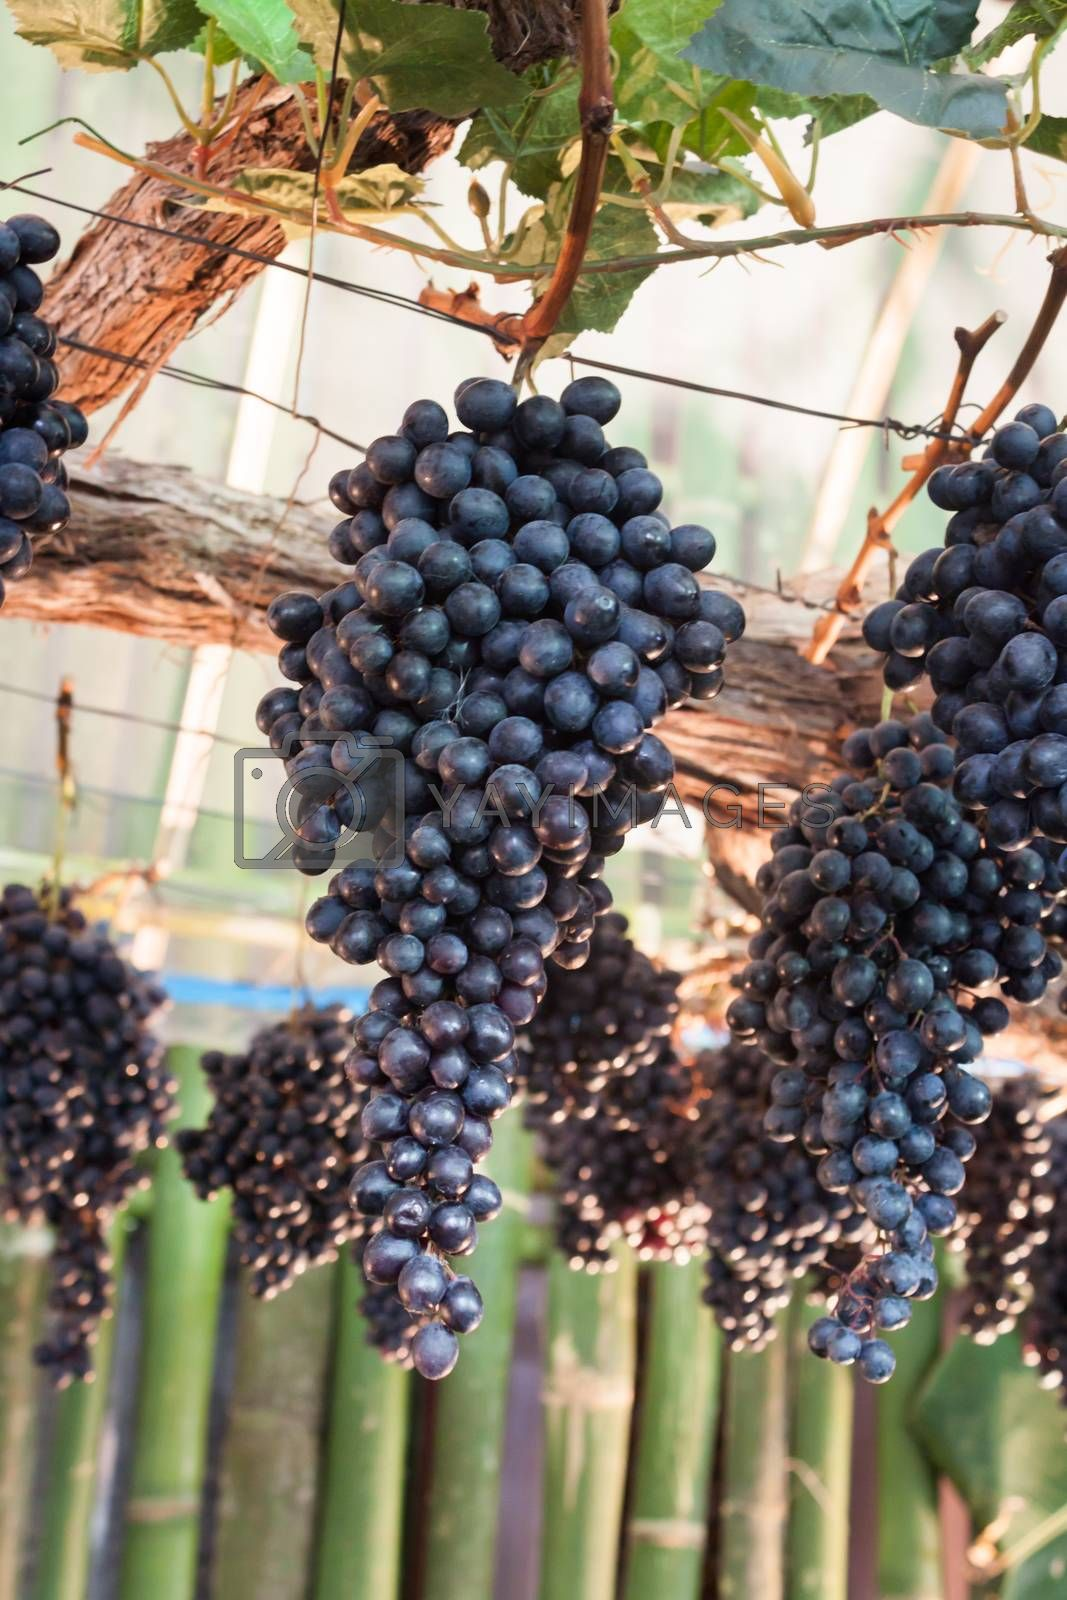 Bunches of grapes hang from a vine by punsayaporn